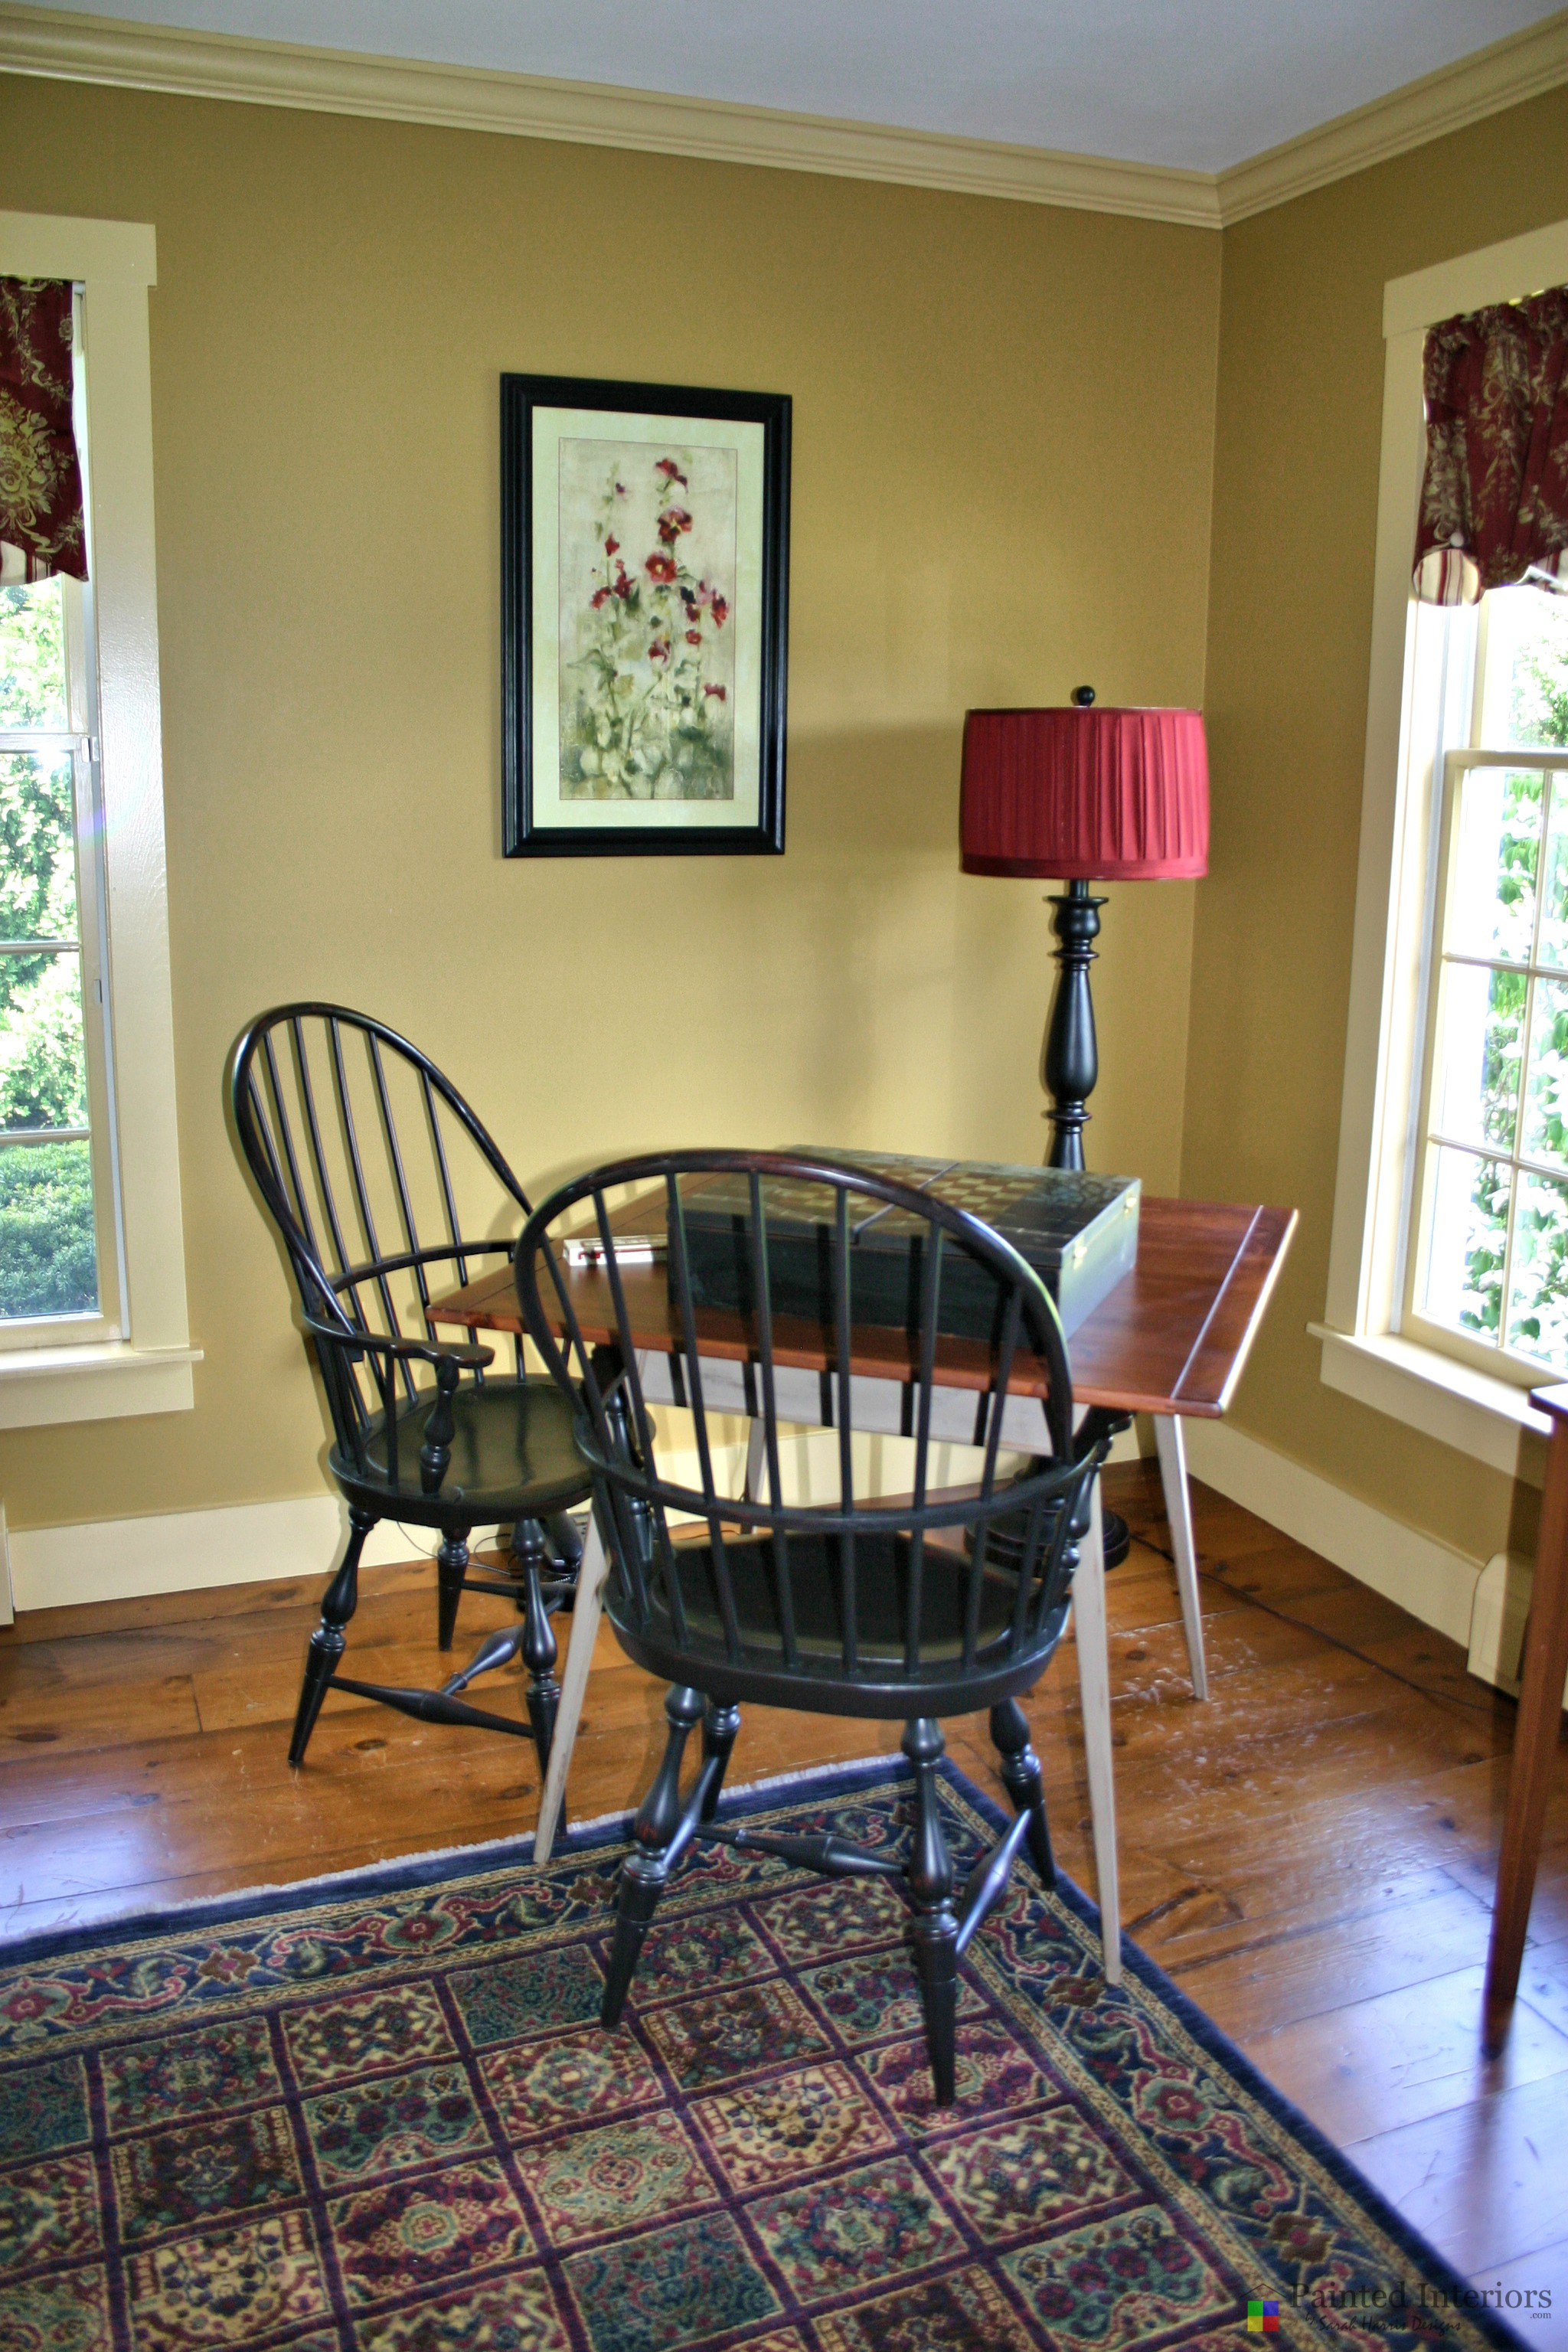 richly painted walls with coordinating trim